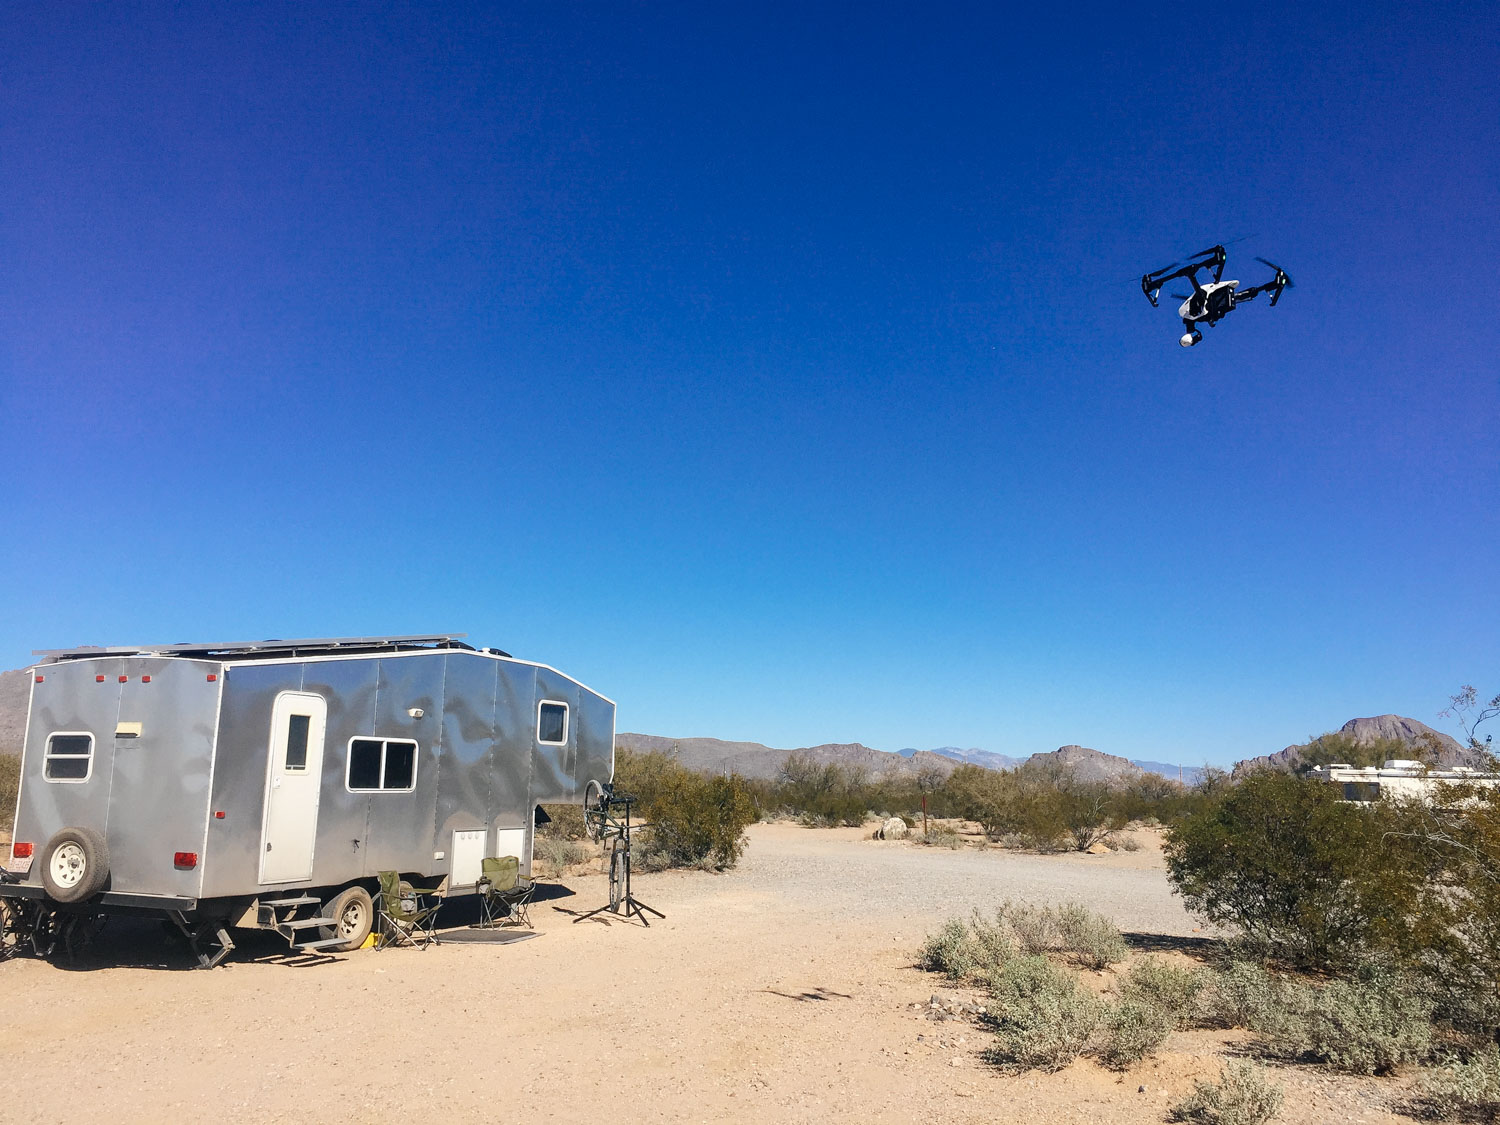 Maury flew the drone to get shots of the Toaster at our boondocking spot.